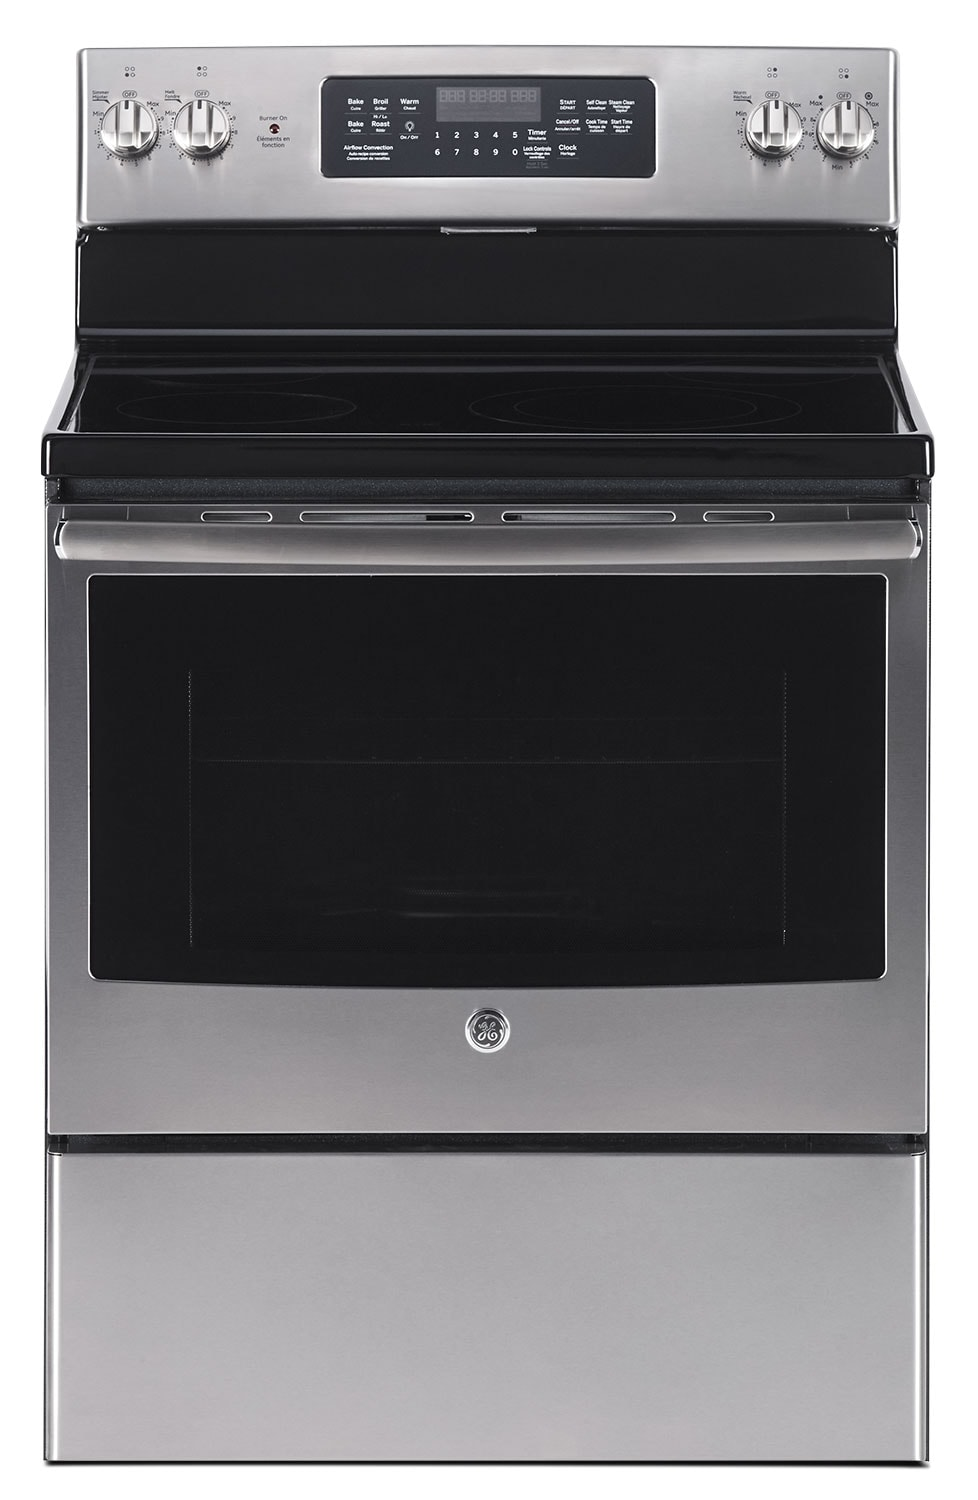 GE 5.0 Cu. Ft. Freestanding Electric Range – JCB830SKSS